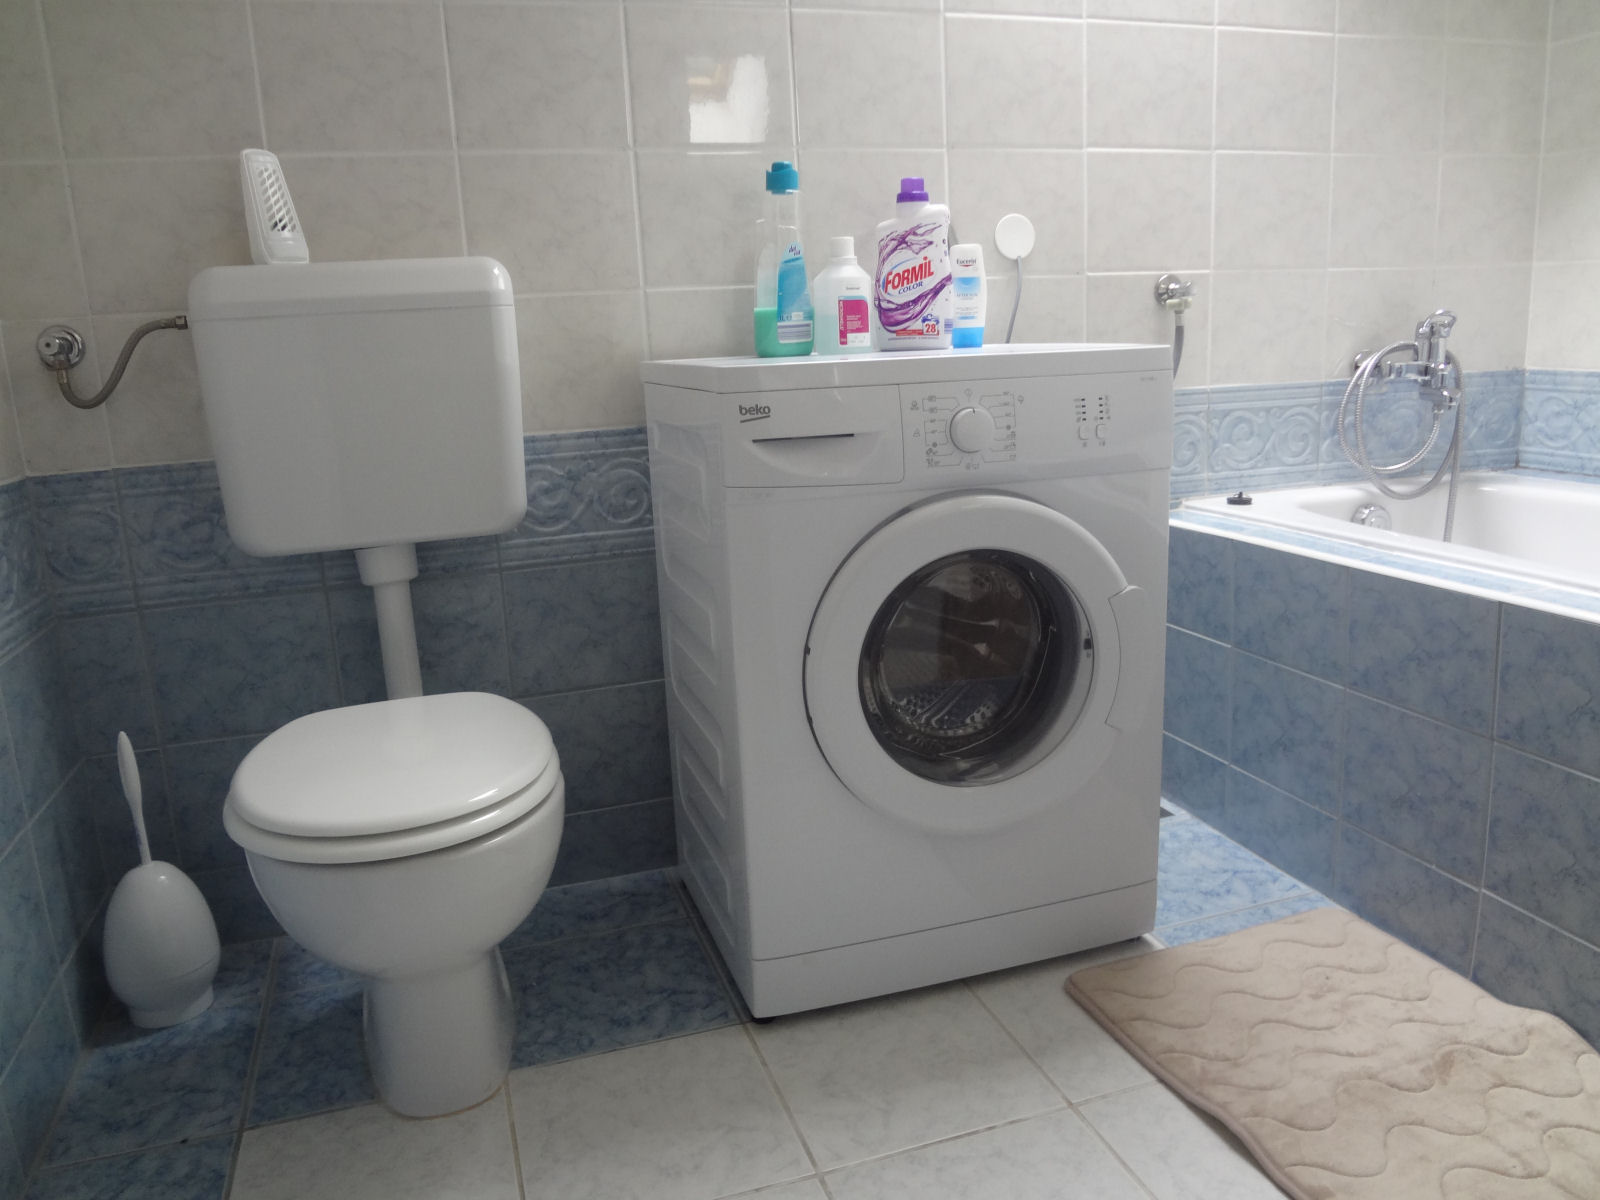 A New Washing Machine In The Bathroom For Our Guests